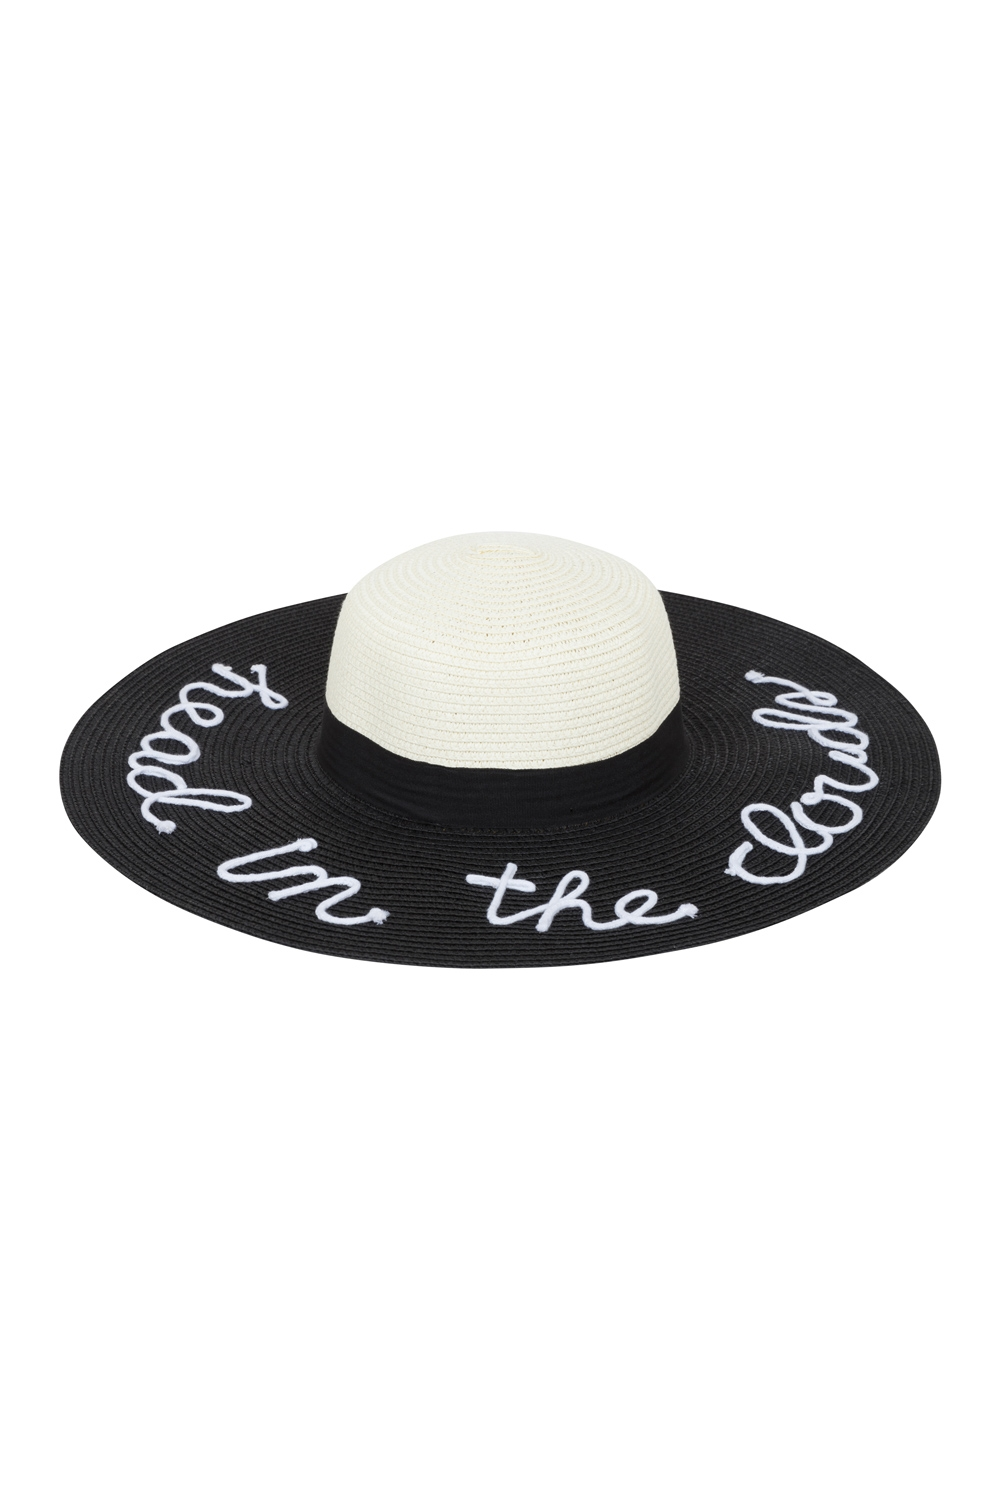 Head In The Clouds Sunhat Black